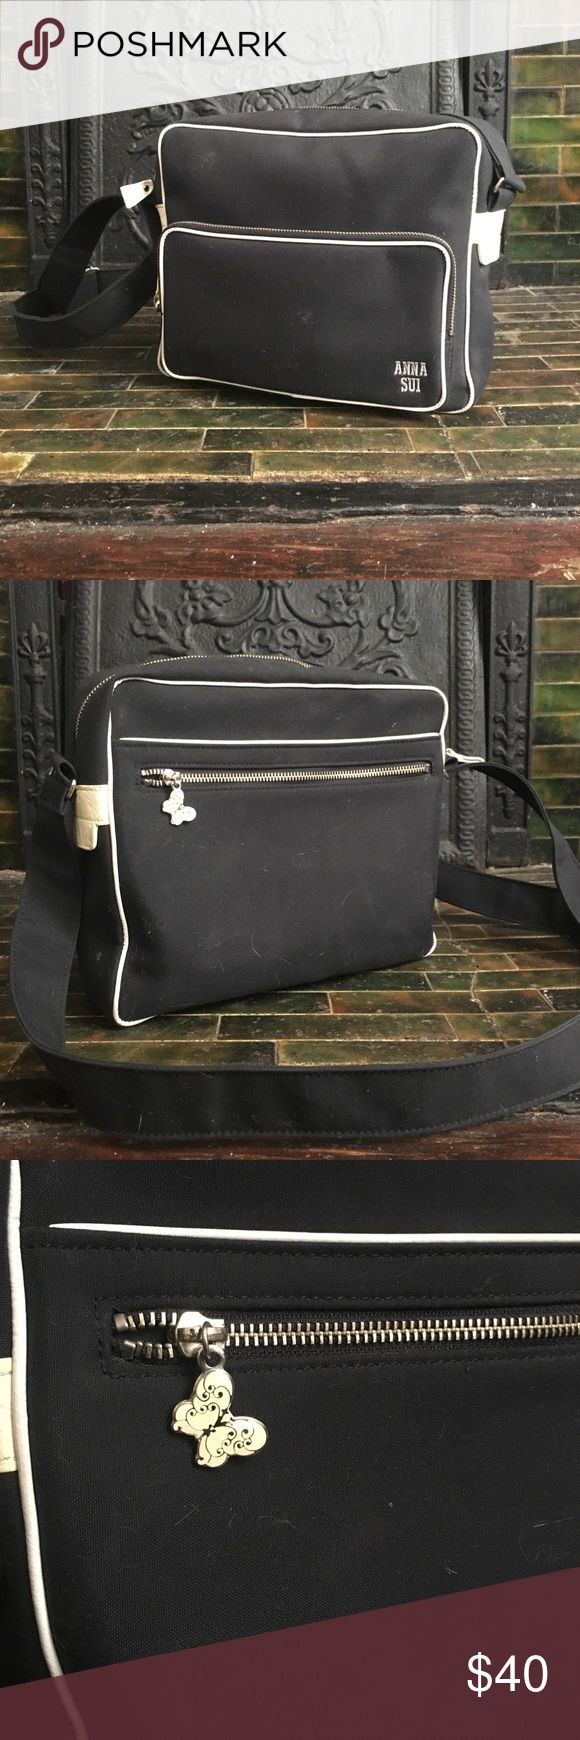 90s Anna Sui messenger purse bag Navy Blue with white trim. The inside is a really cool patterned nylon lining. Anna Sui Bags Crossbody Bags